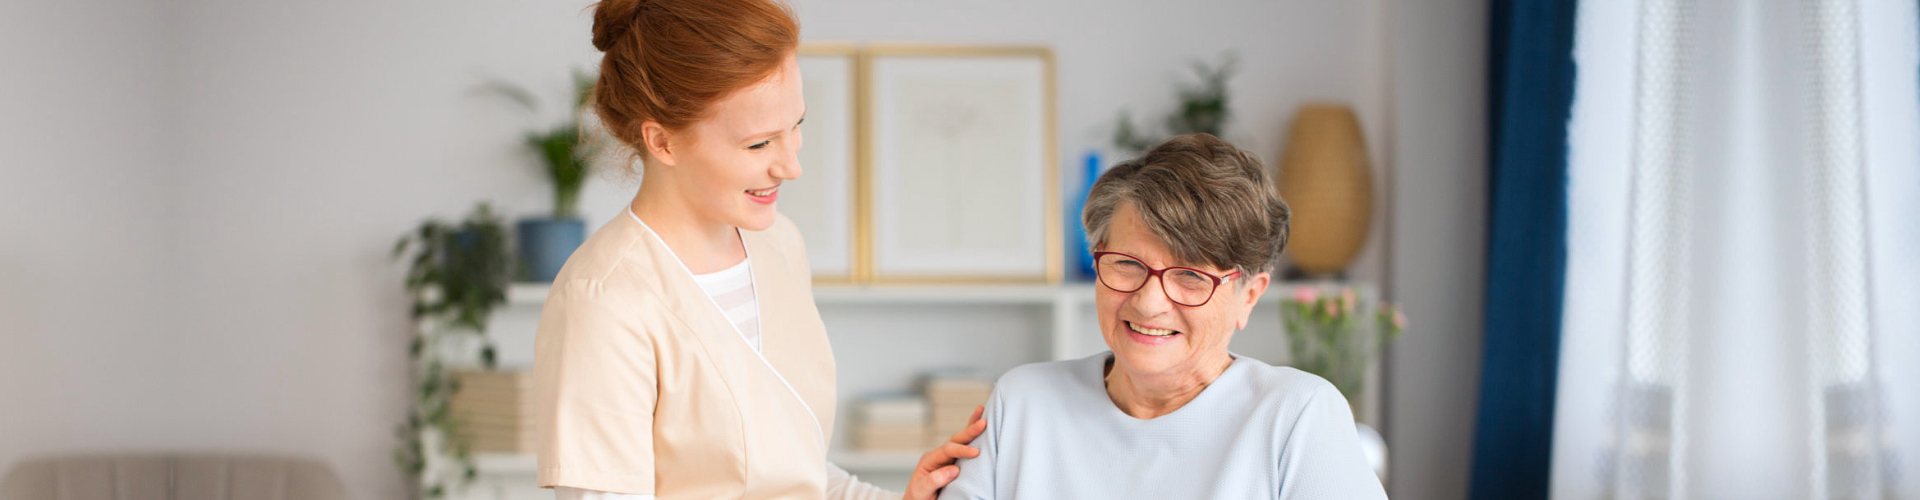 woman and senior showing a smile